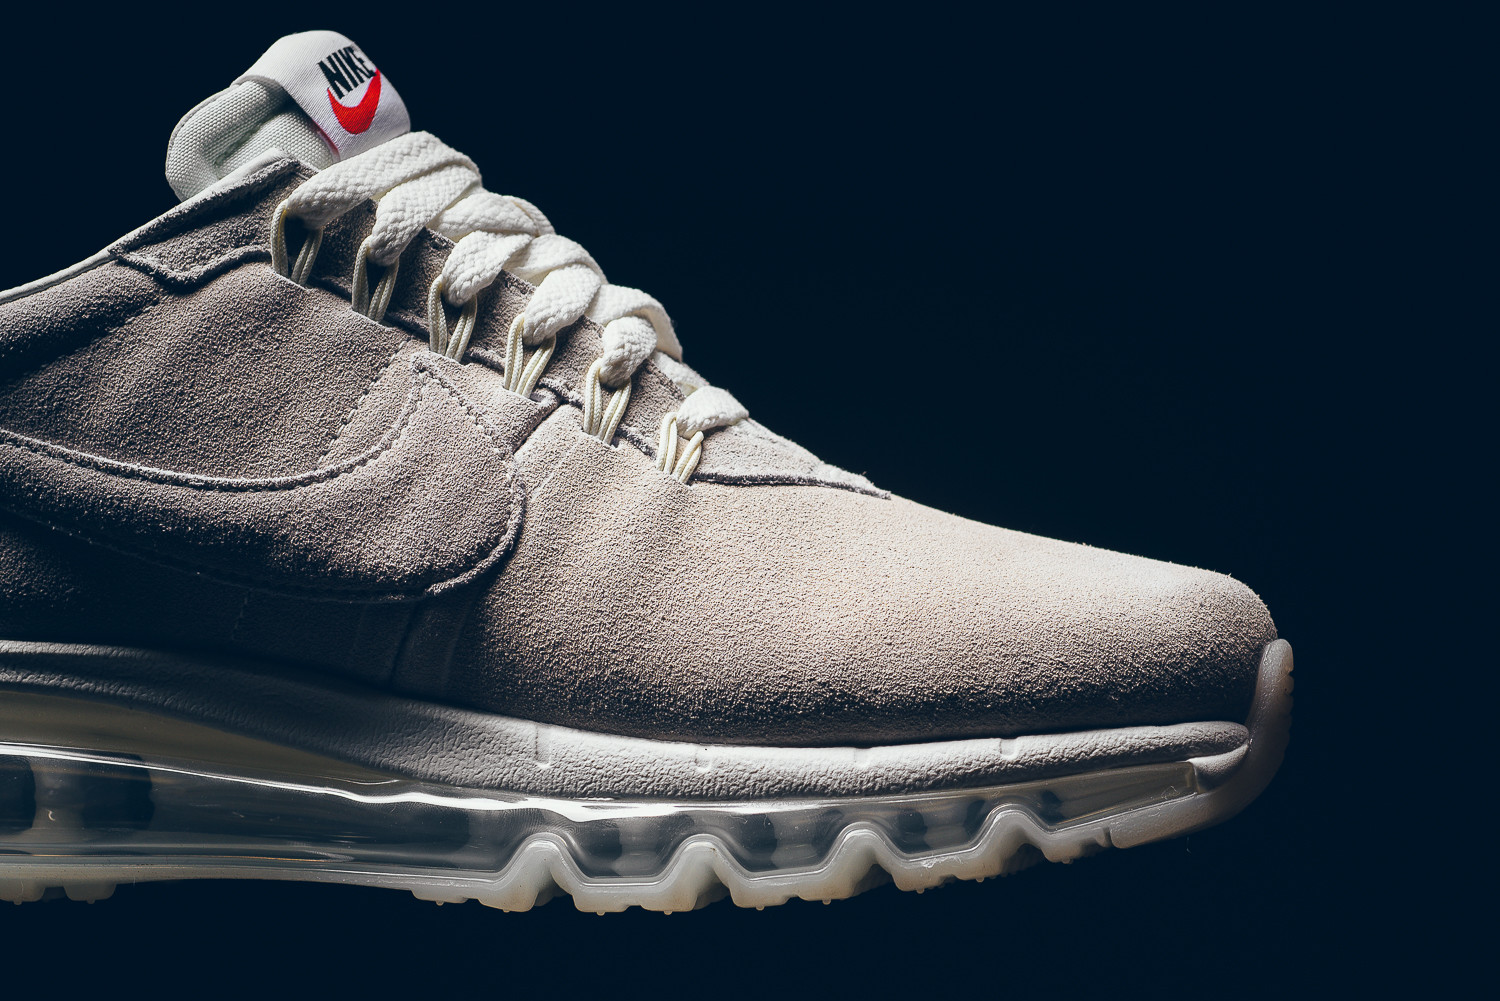 hot sale online edc83 e8565 Sail Covers This Upcoming Colorway Of The Nike Air Max LD ...